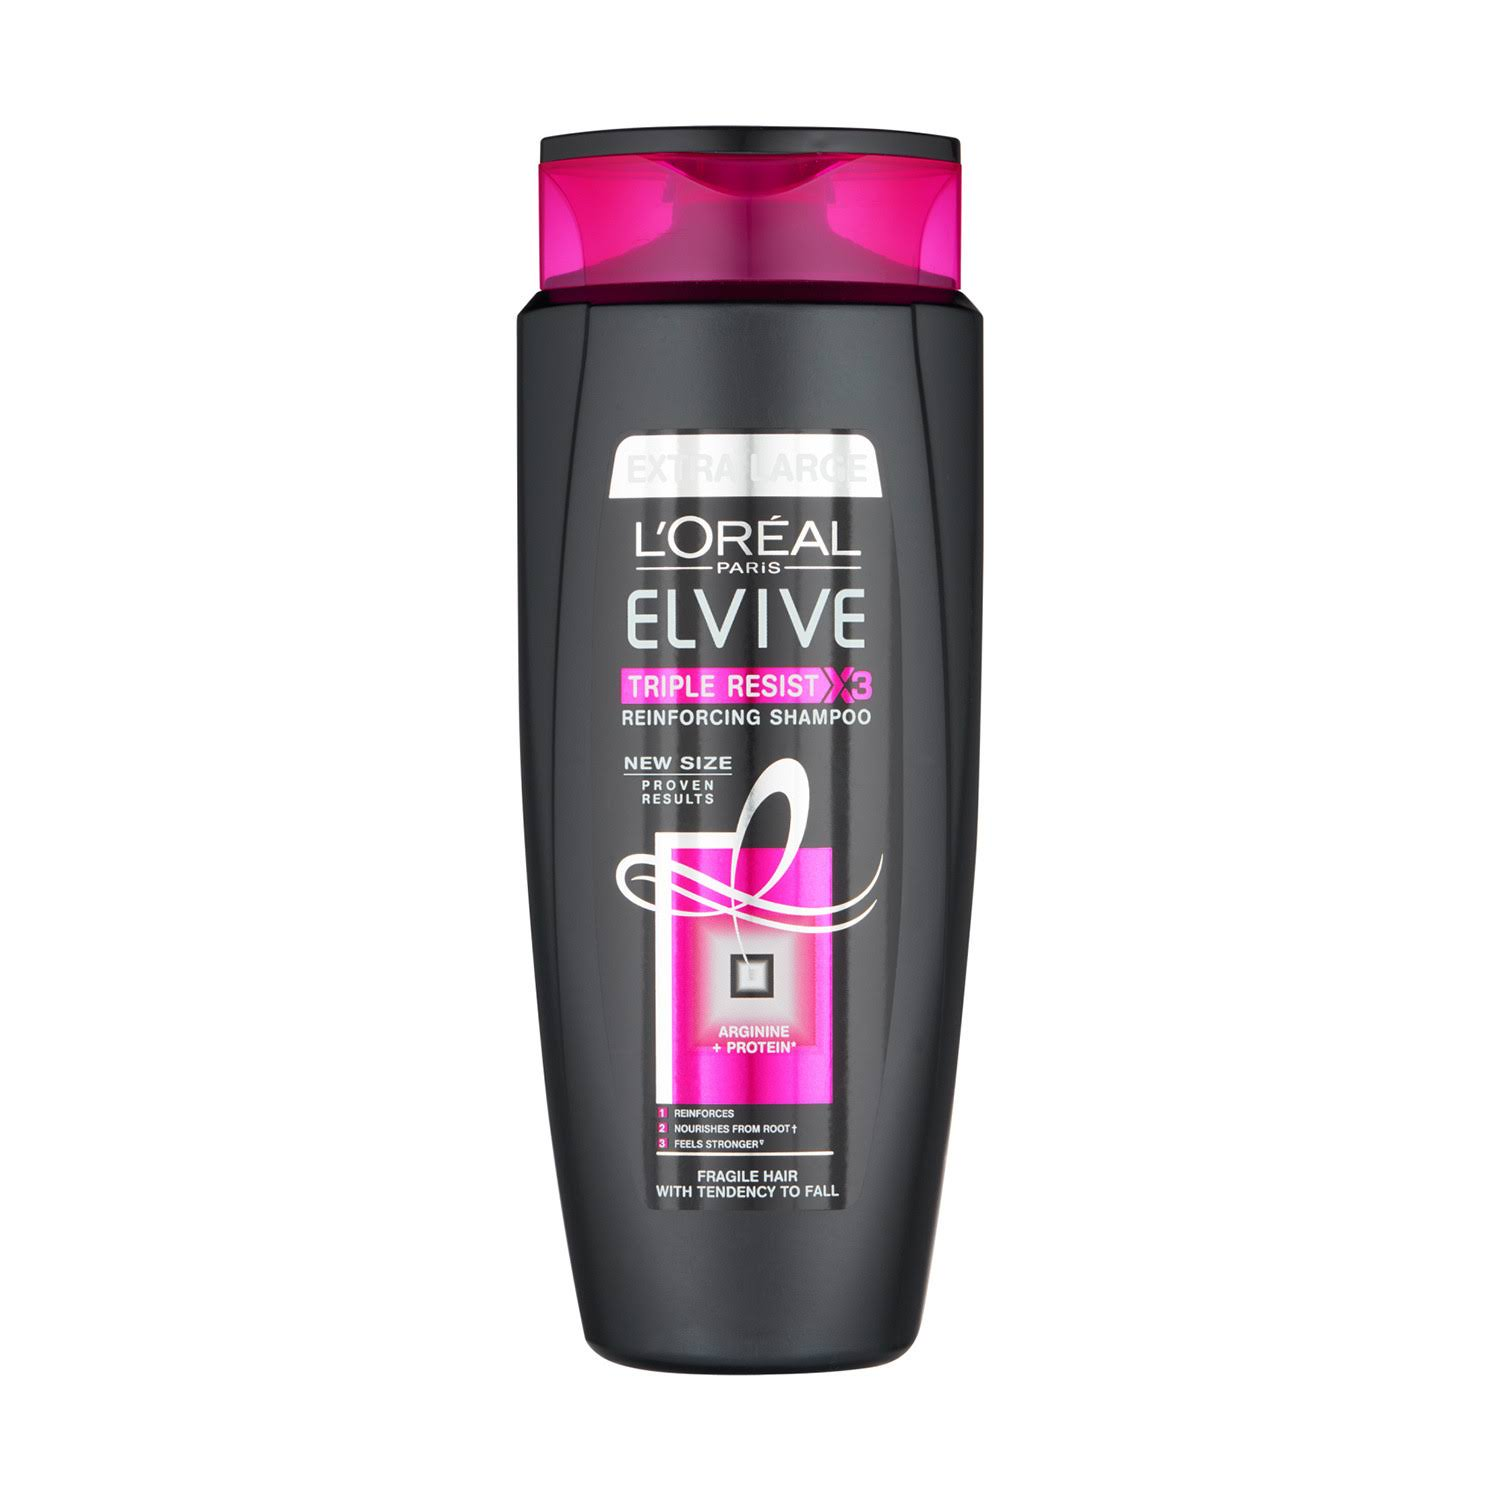 L'Oreal Elvive Triple Resist Shampoo 700ml